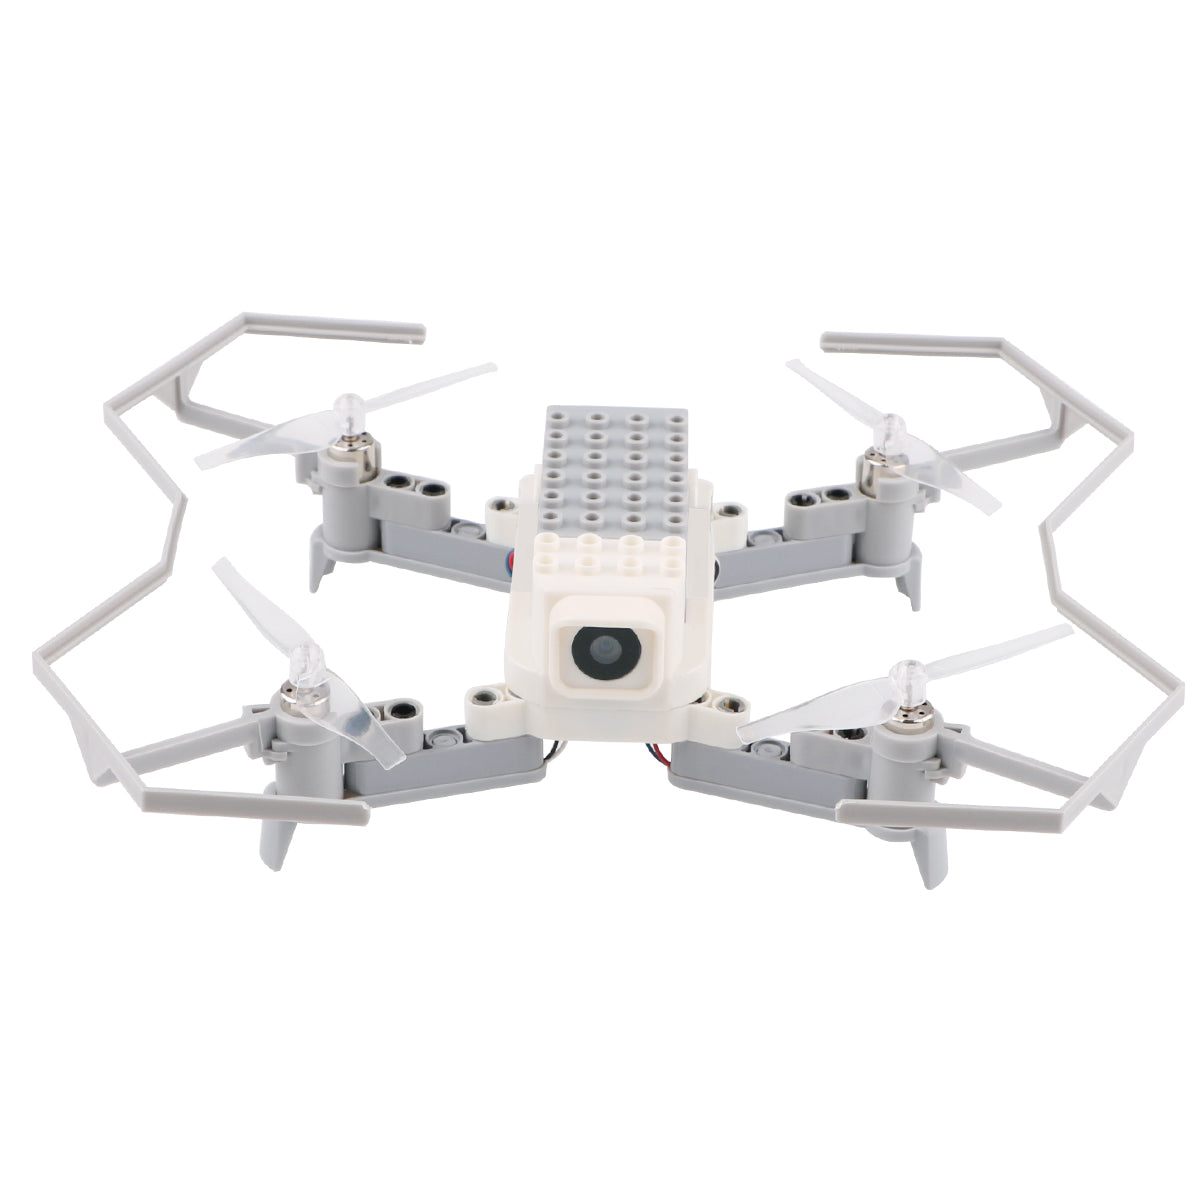 LiteBee Wing Coding Quadcopter Kit - Set of 4